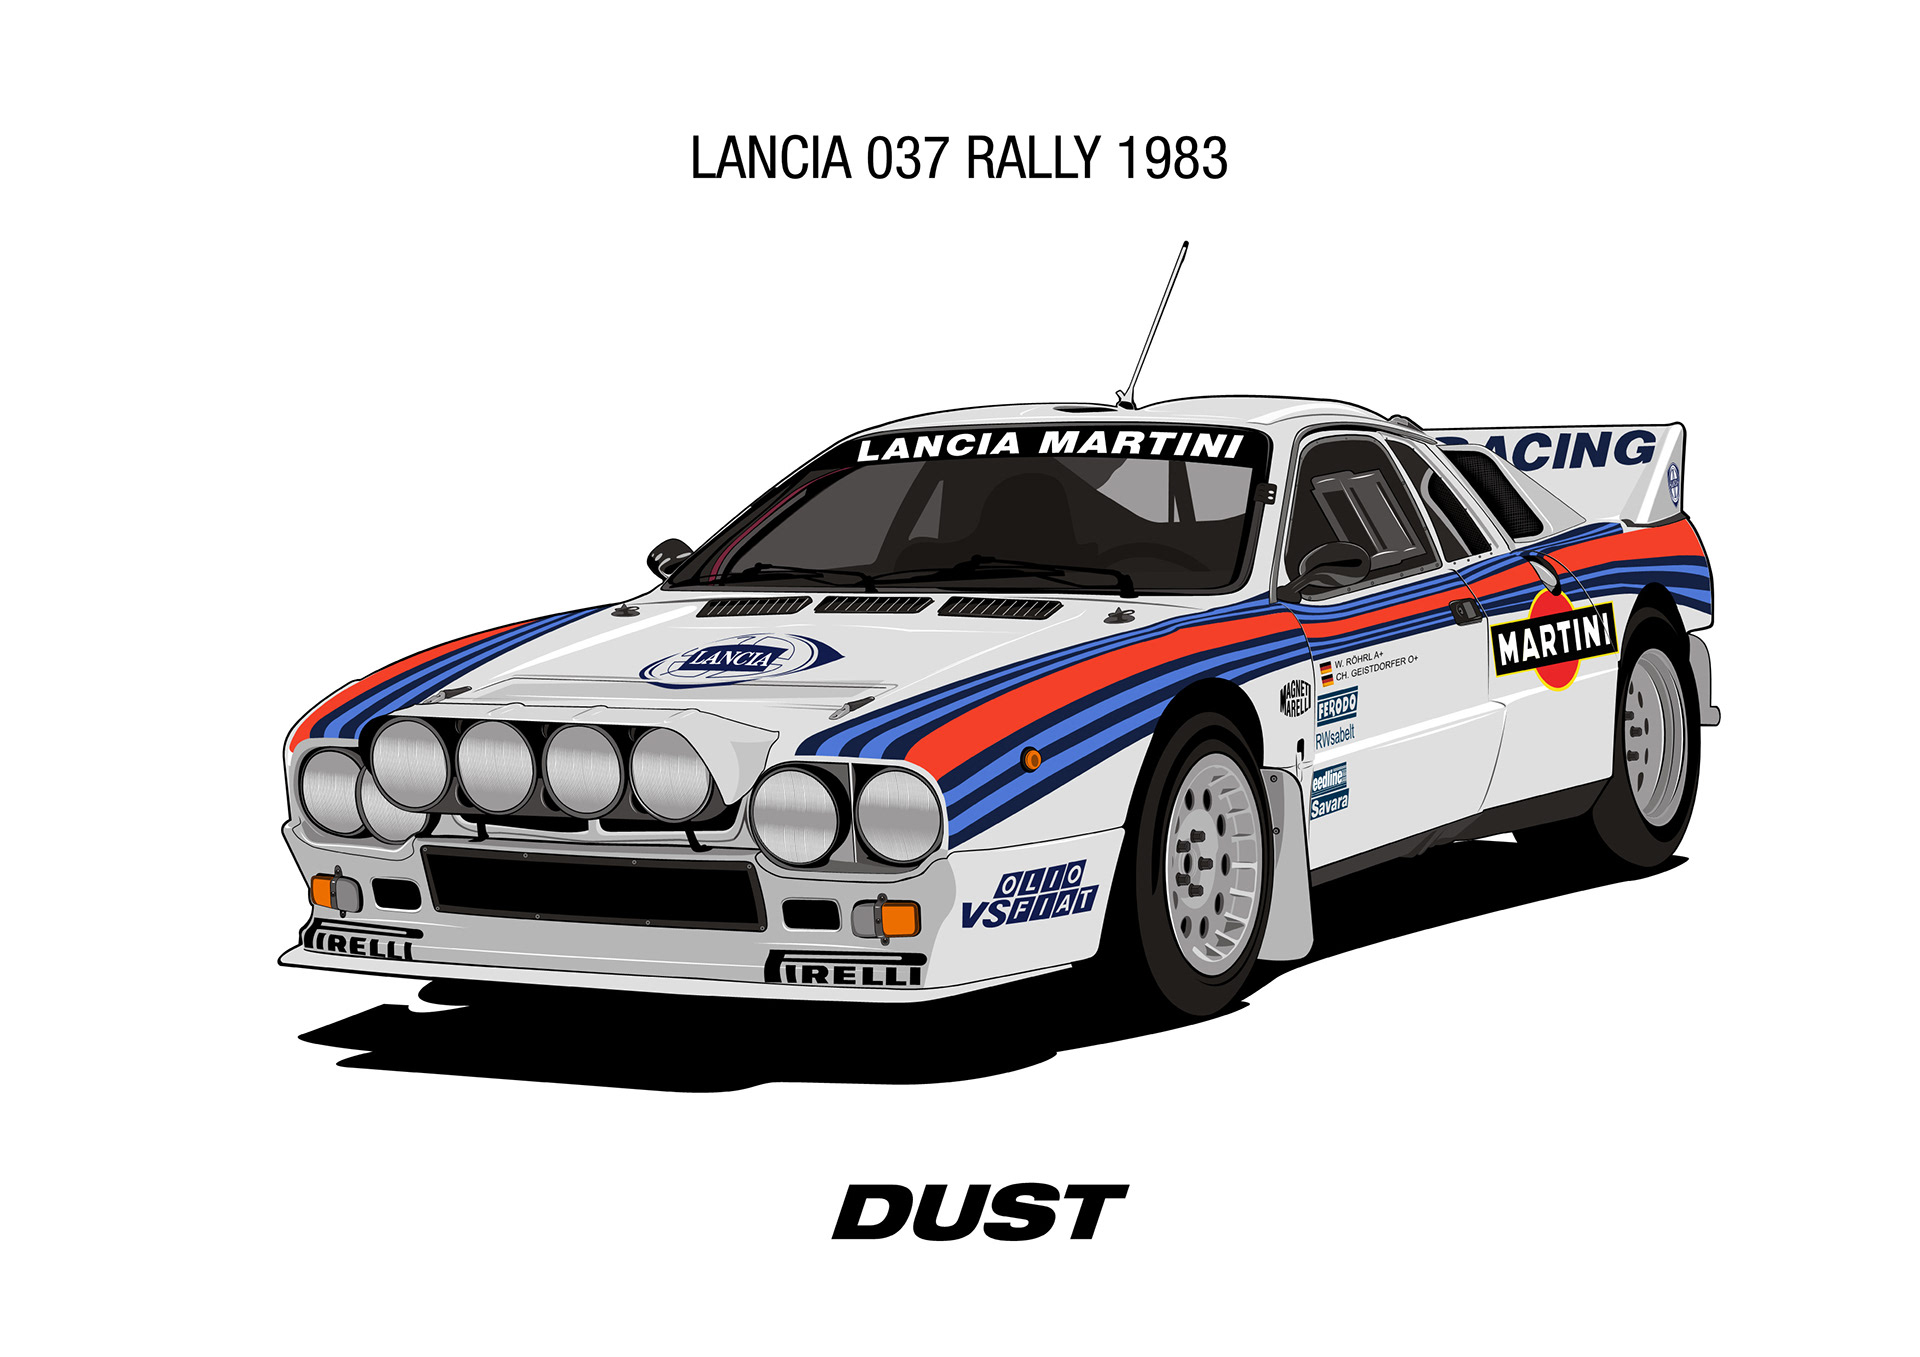 Dust Lancia 037 Rally